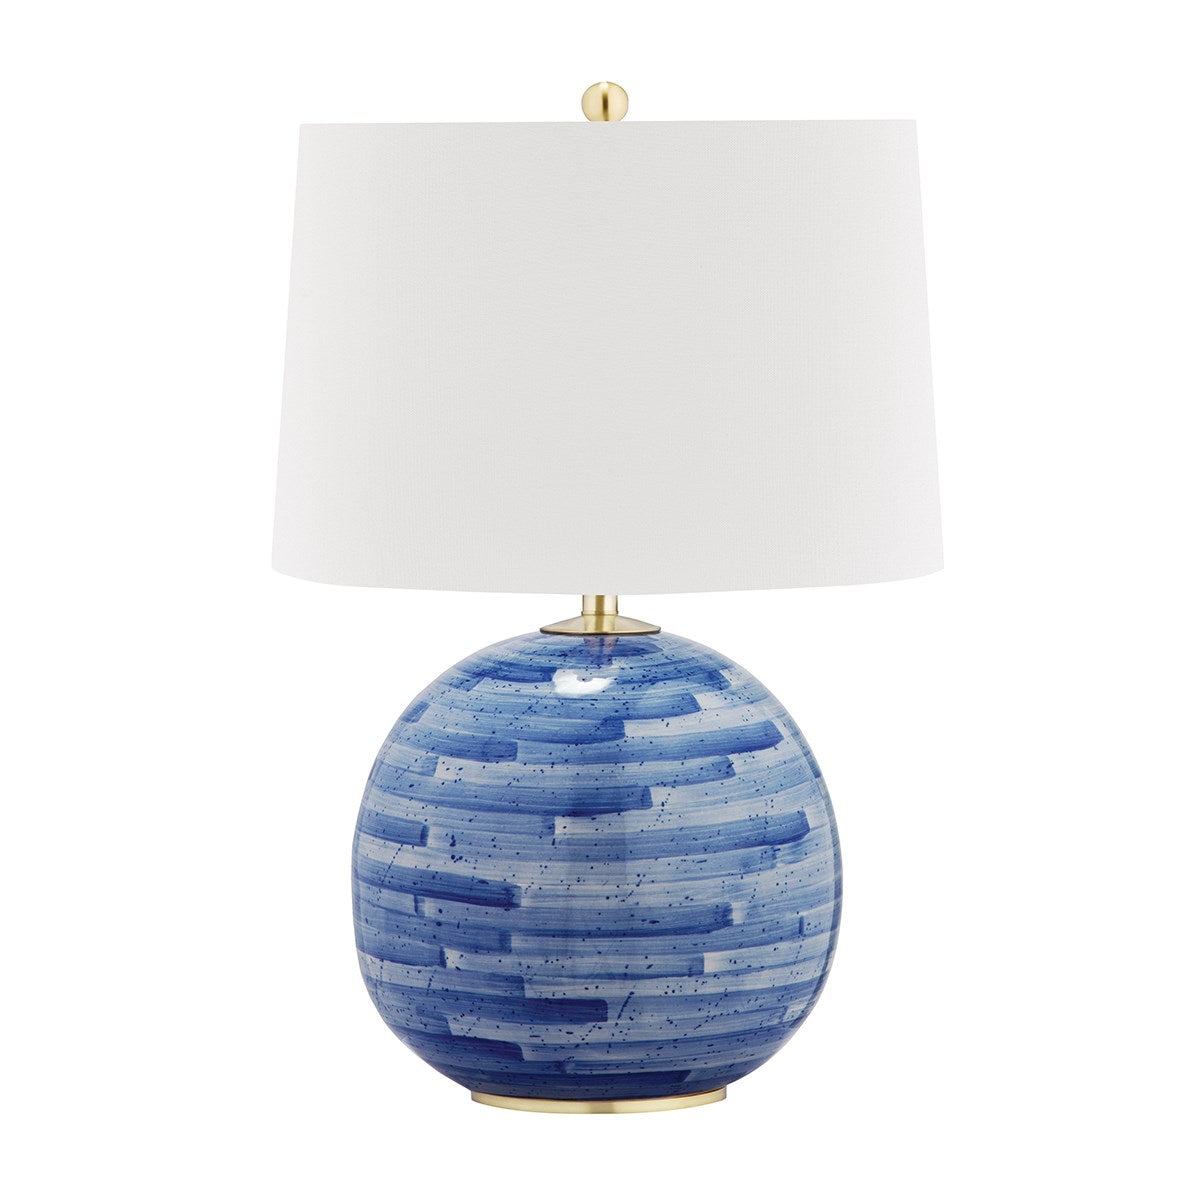 The Neptune Table Lamp